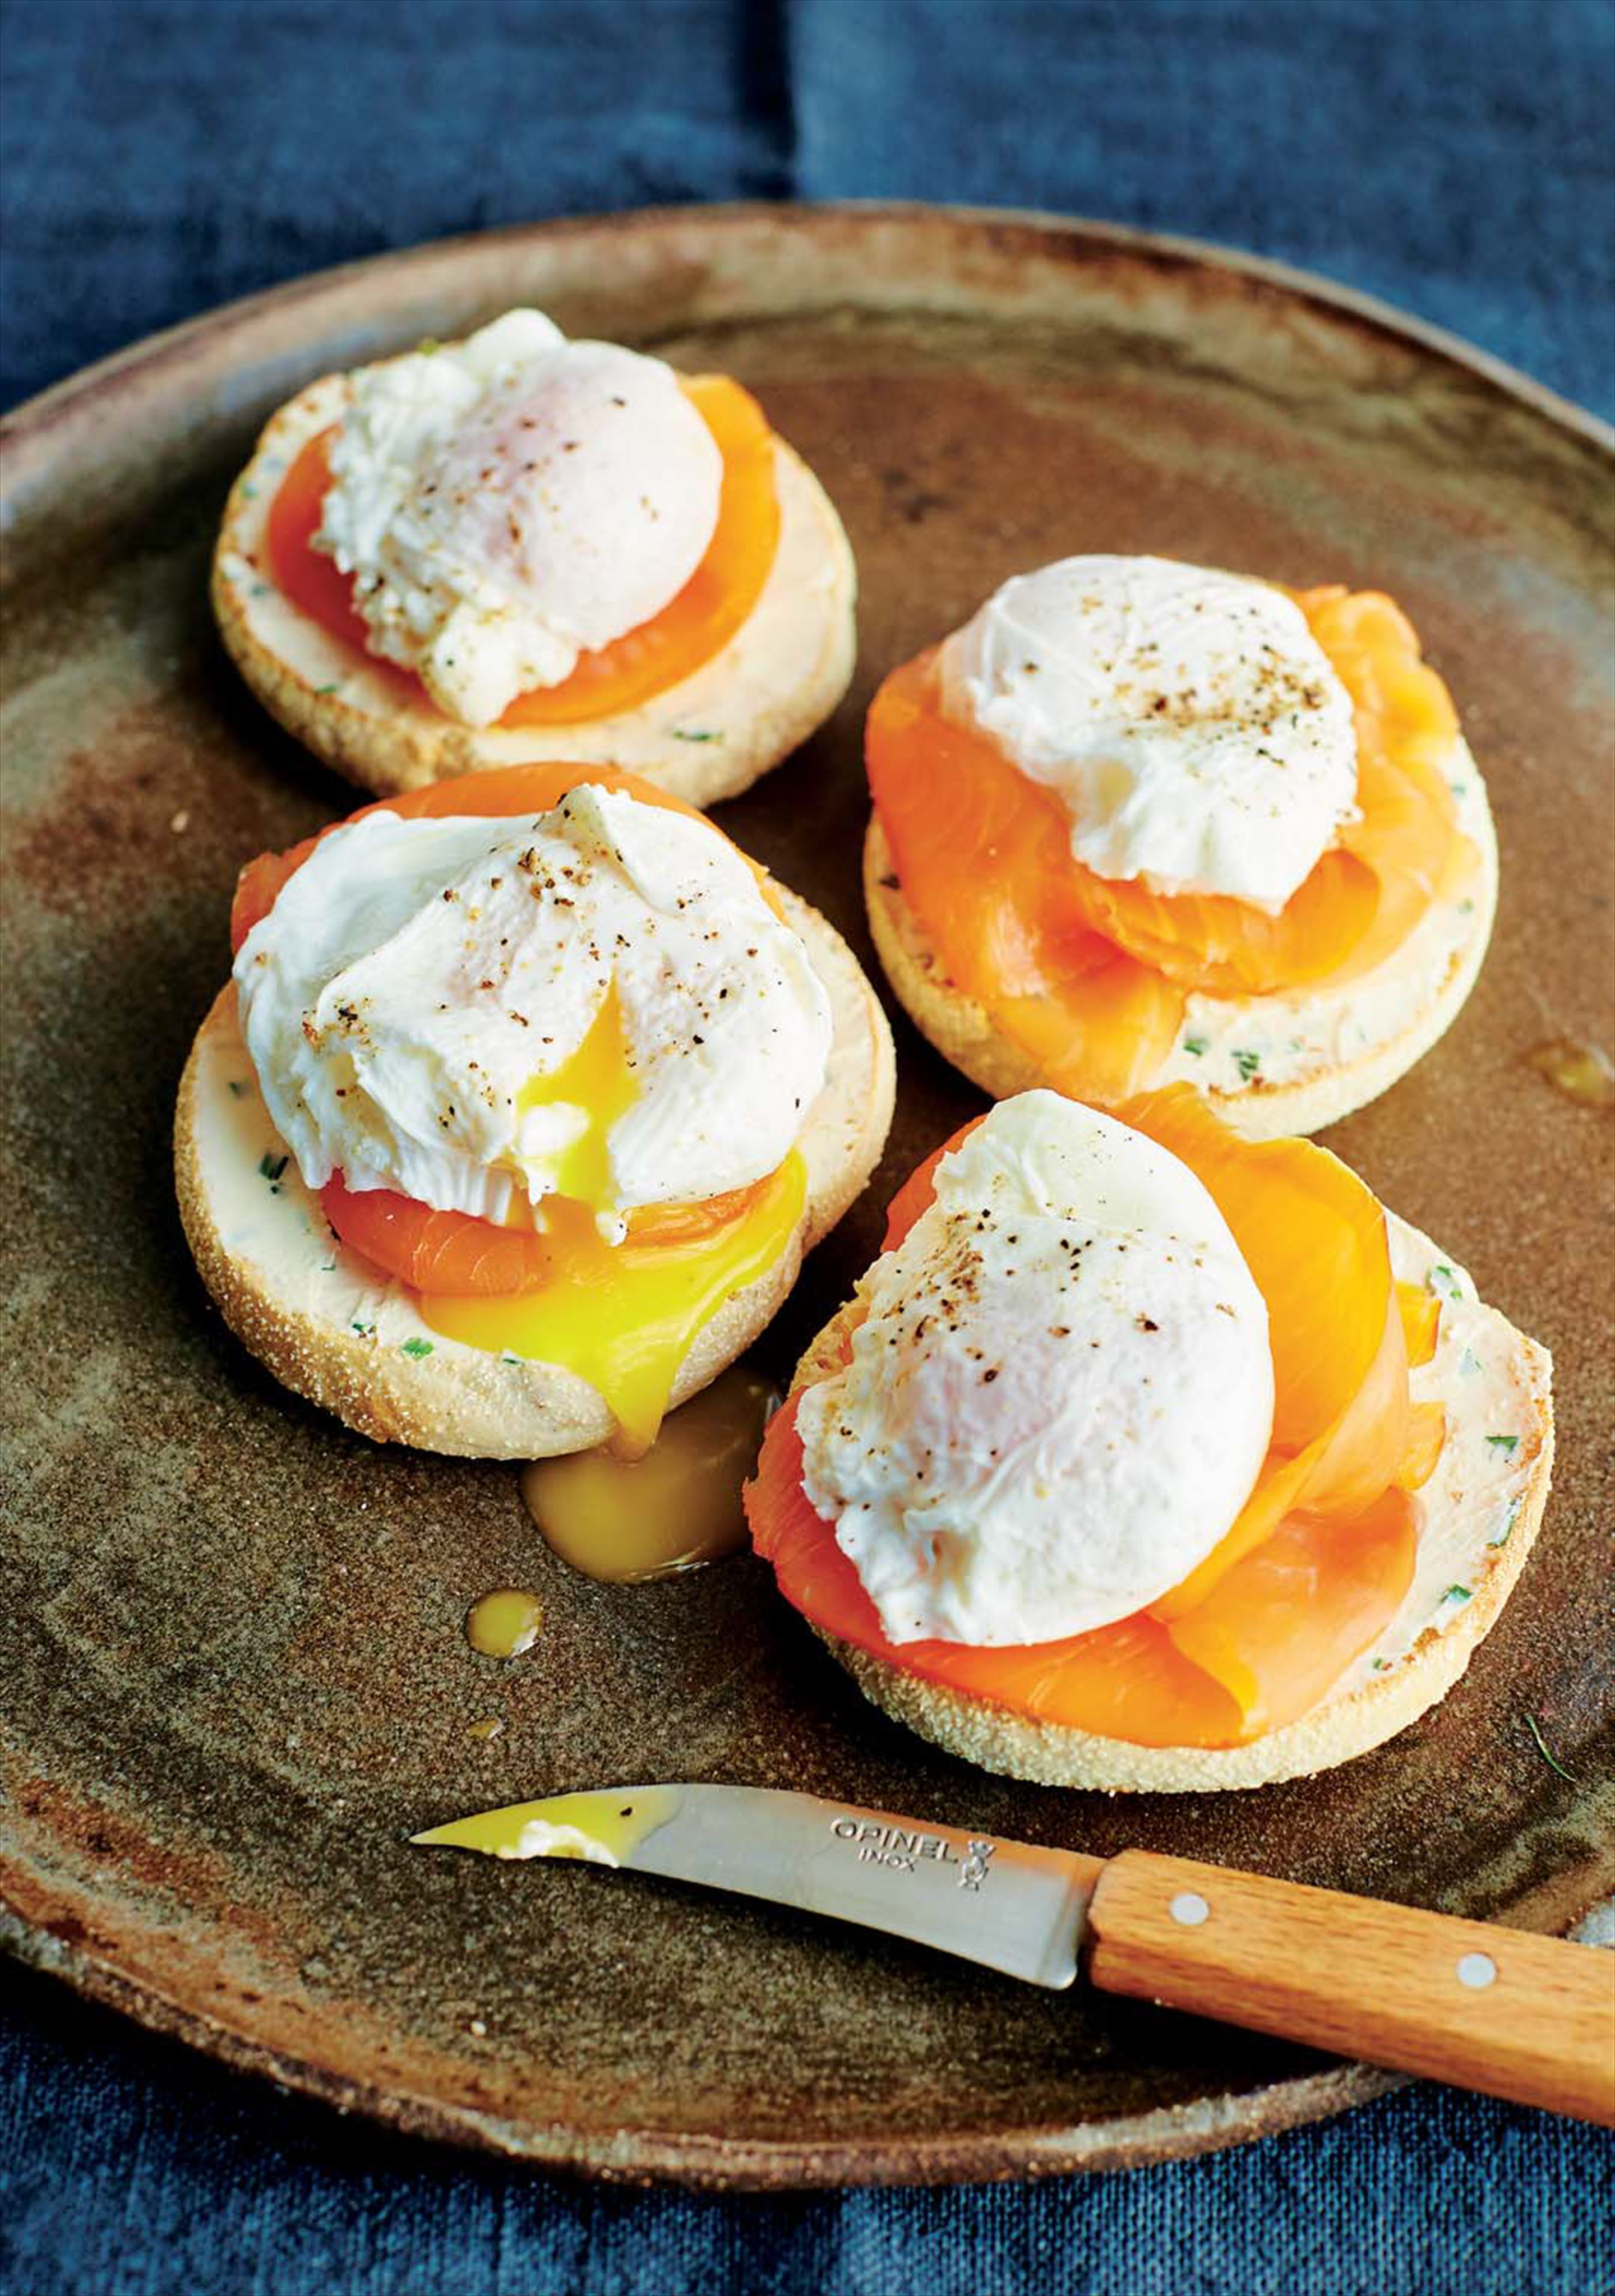 Smoked salmon, poached eggs and buttered muffins